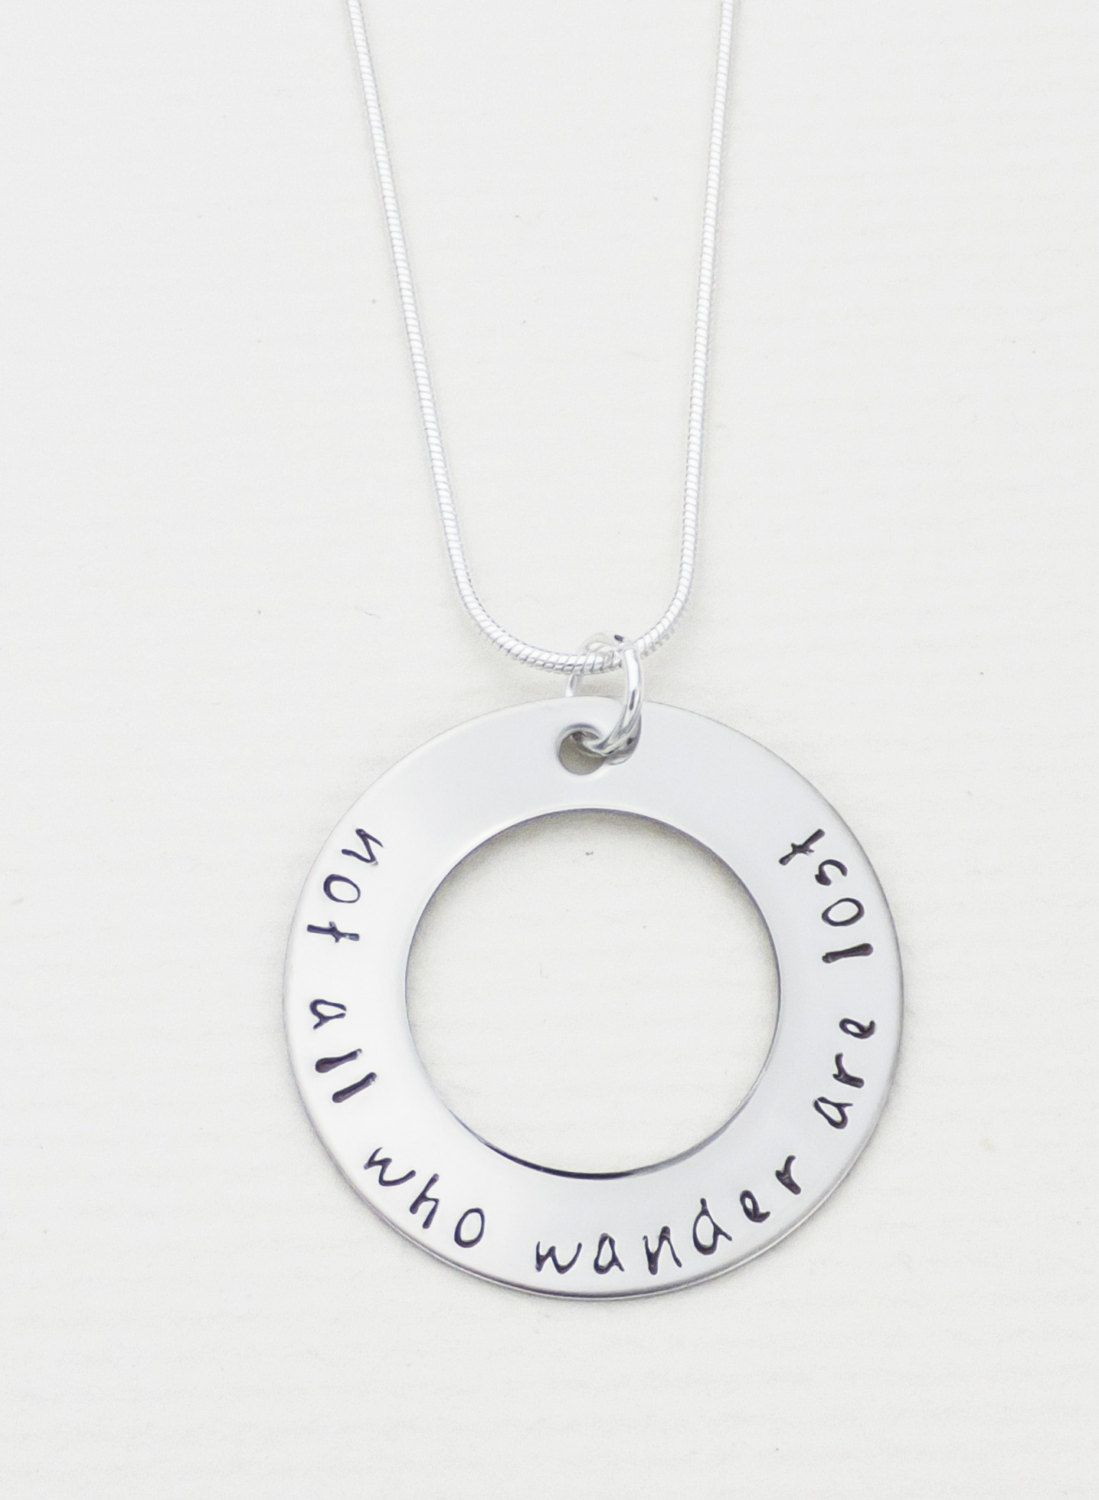 New to CathysCreationsJwlry on Etsy: Not All Who Wander Are Lost Inspirational Hand Stamped Washer - Hand Stamped Jewelry - Customizable - Birthstone Necklace - Personalized (25.00 USD)